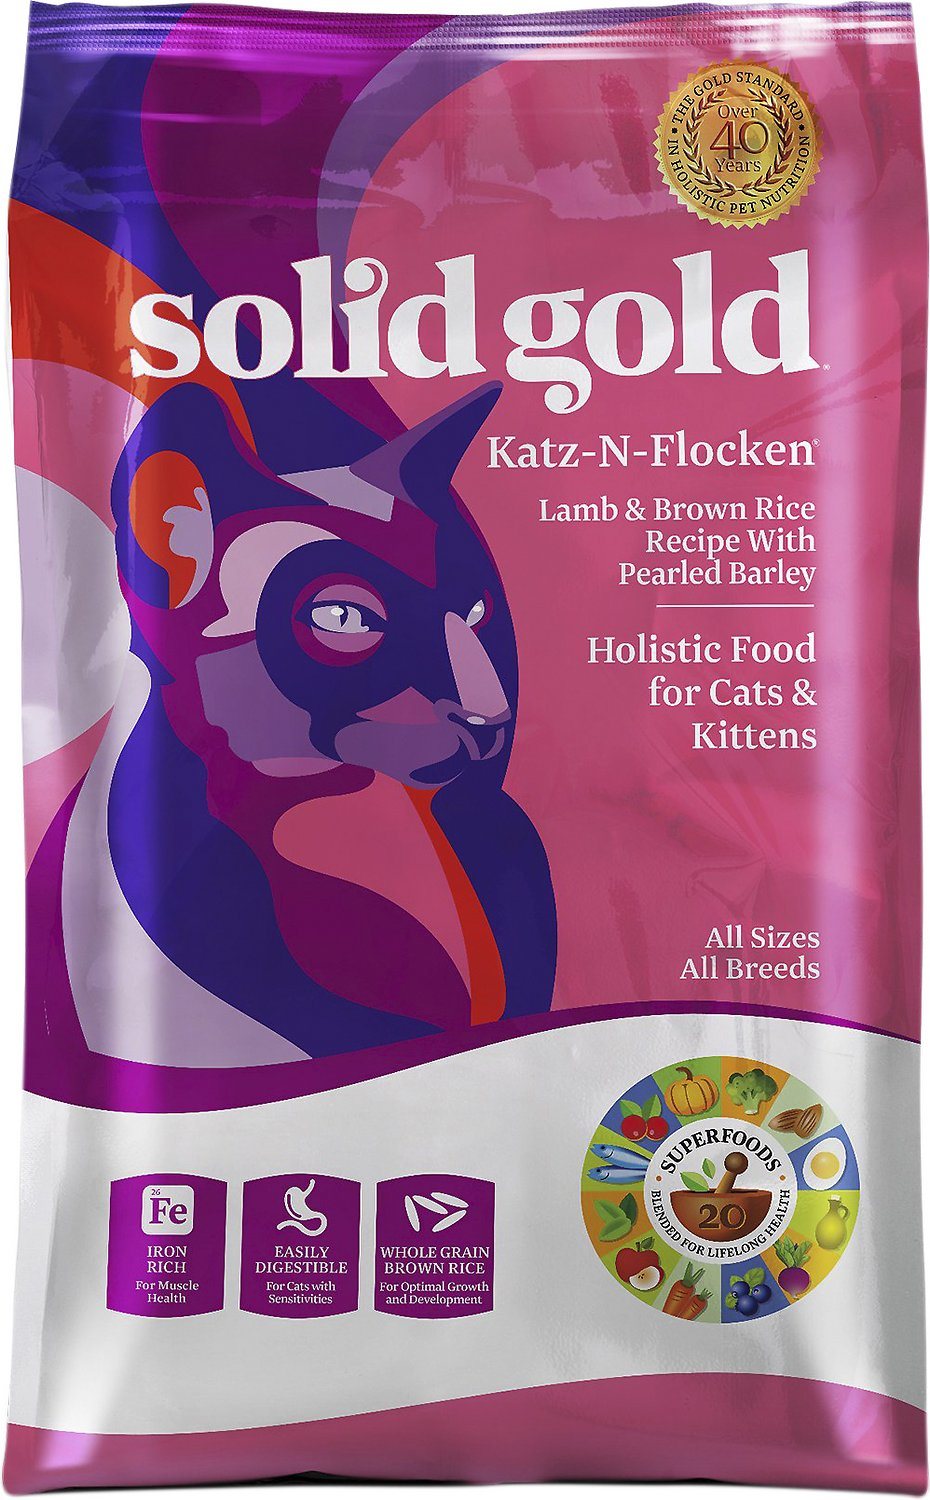 Solid Gold Katz-n-Flocken Lamb & Brown Rice Recipe with Pearled Barley Dry Cat Food Image